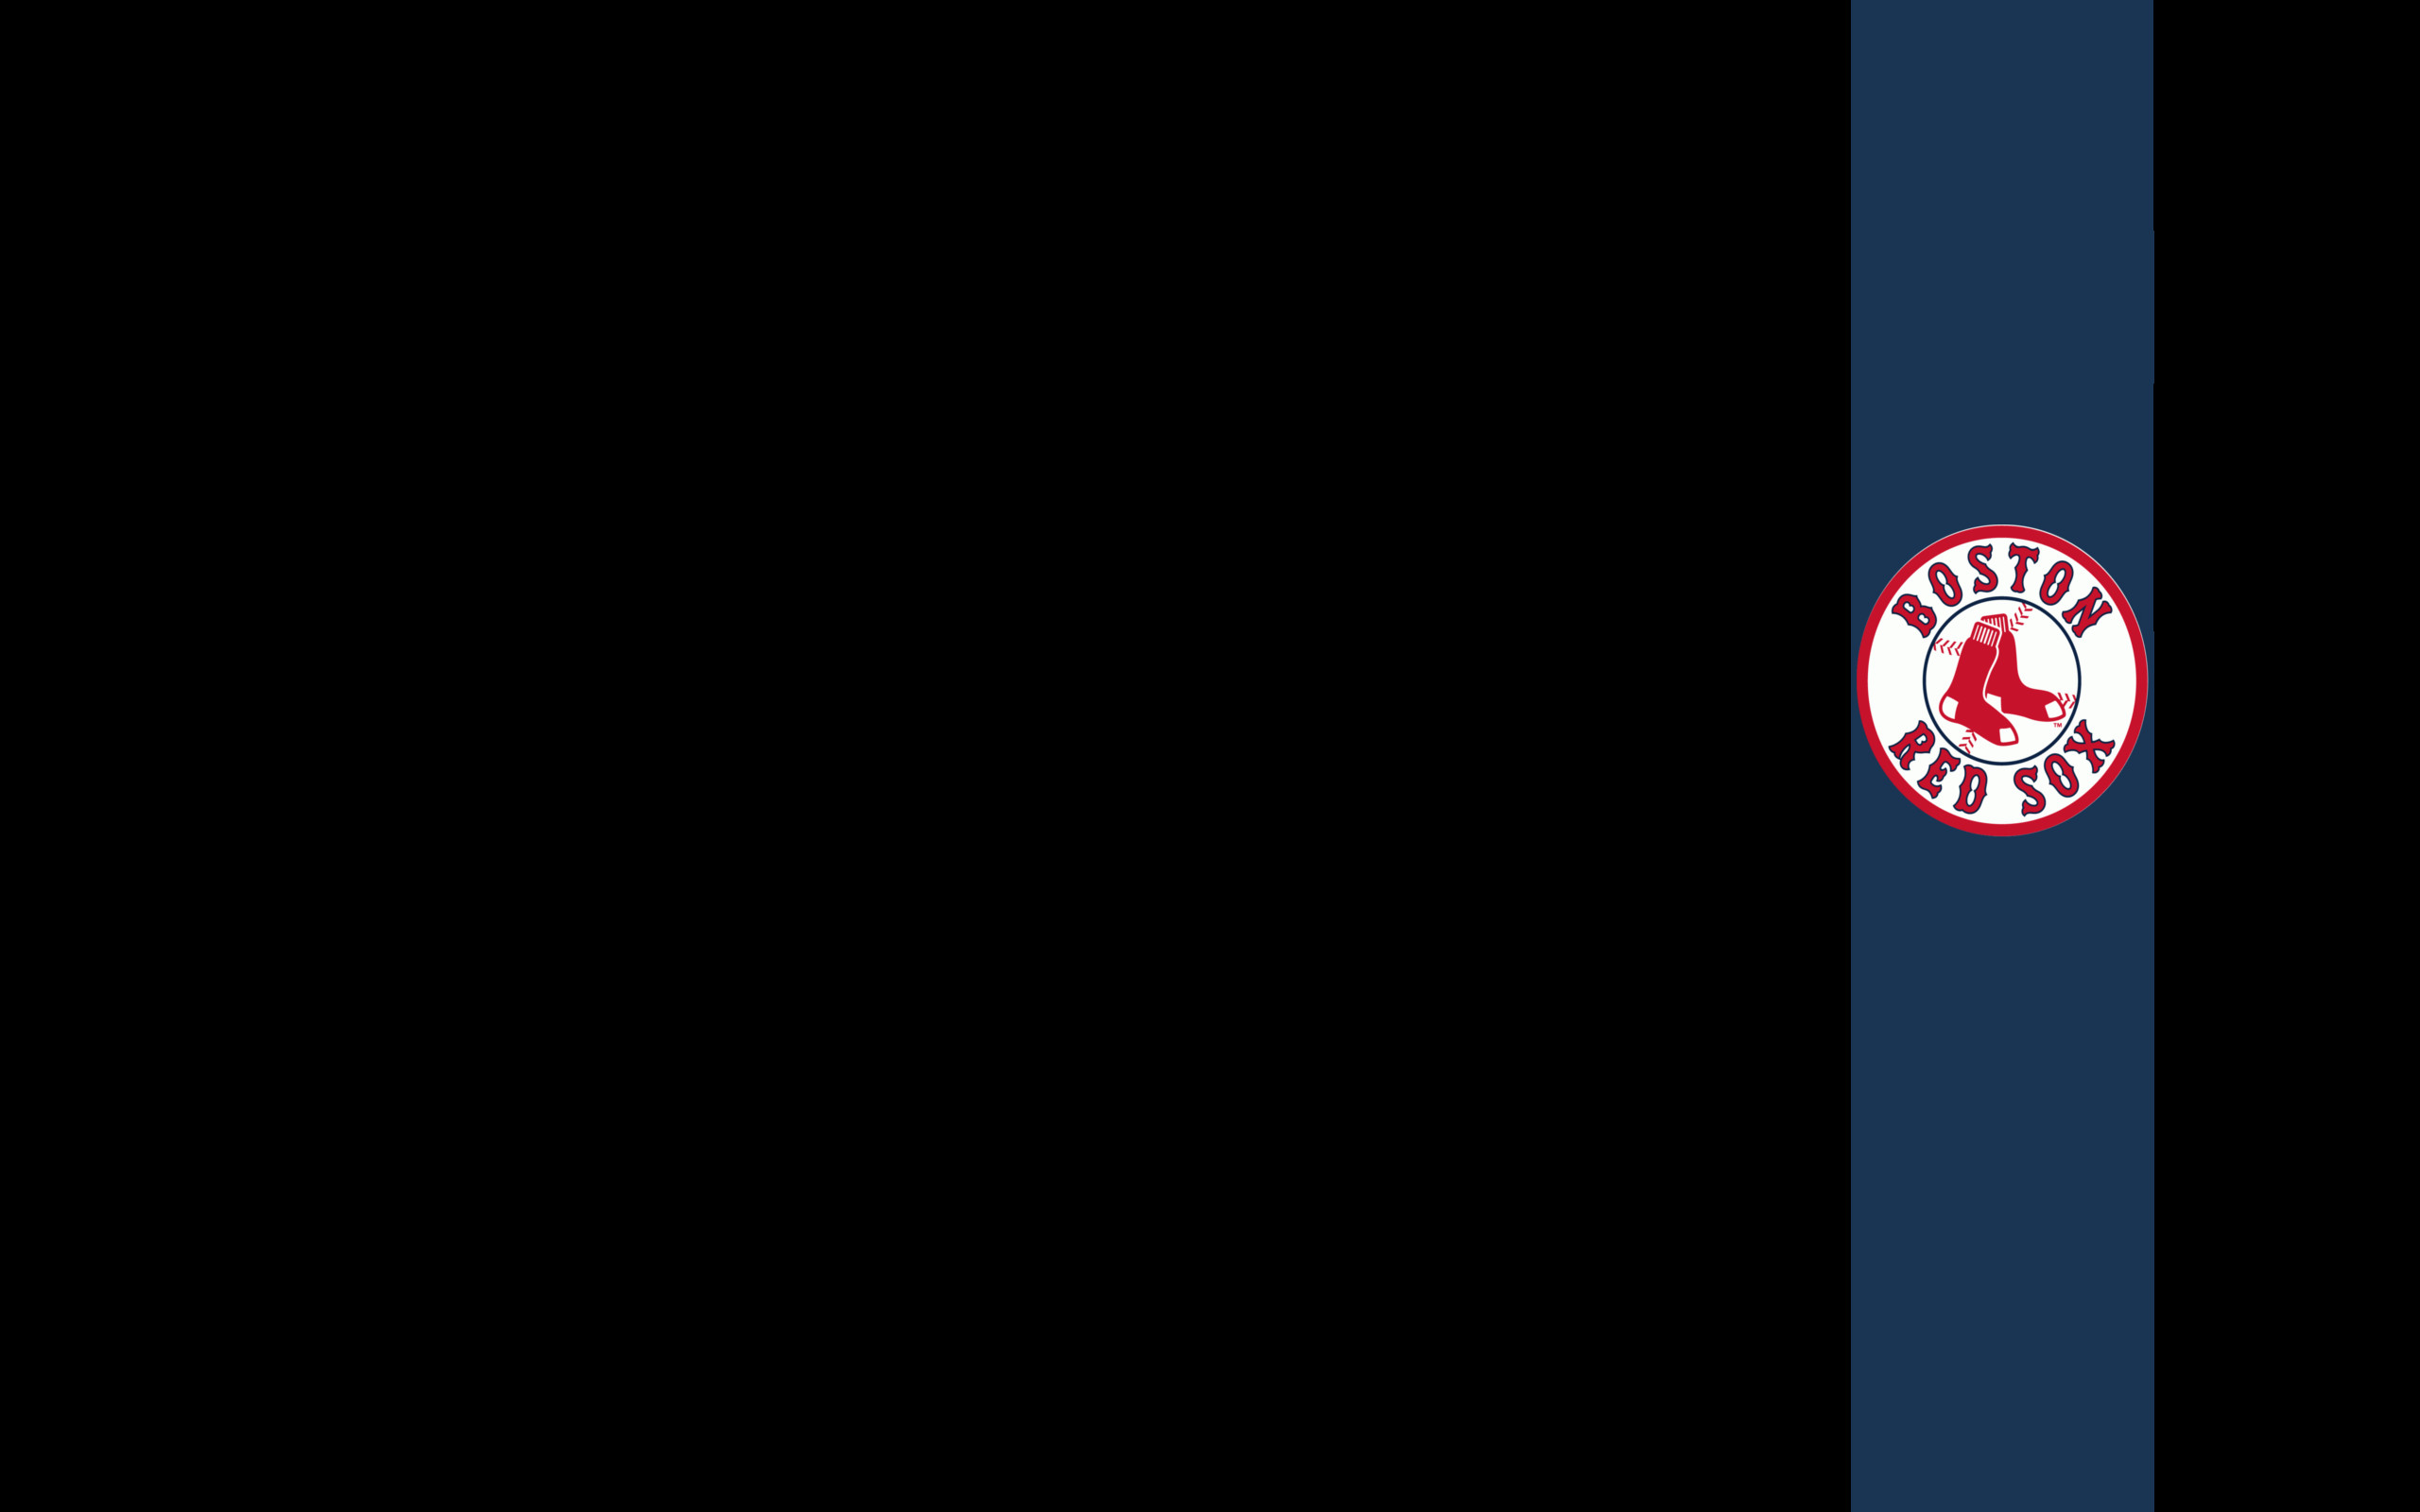 boston red sox logo wallpaper hd 1920×1080 Car Pictures